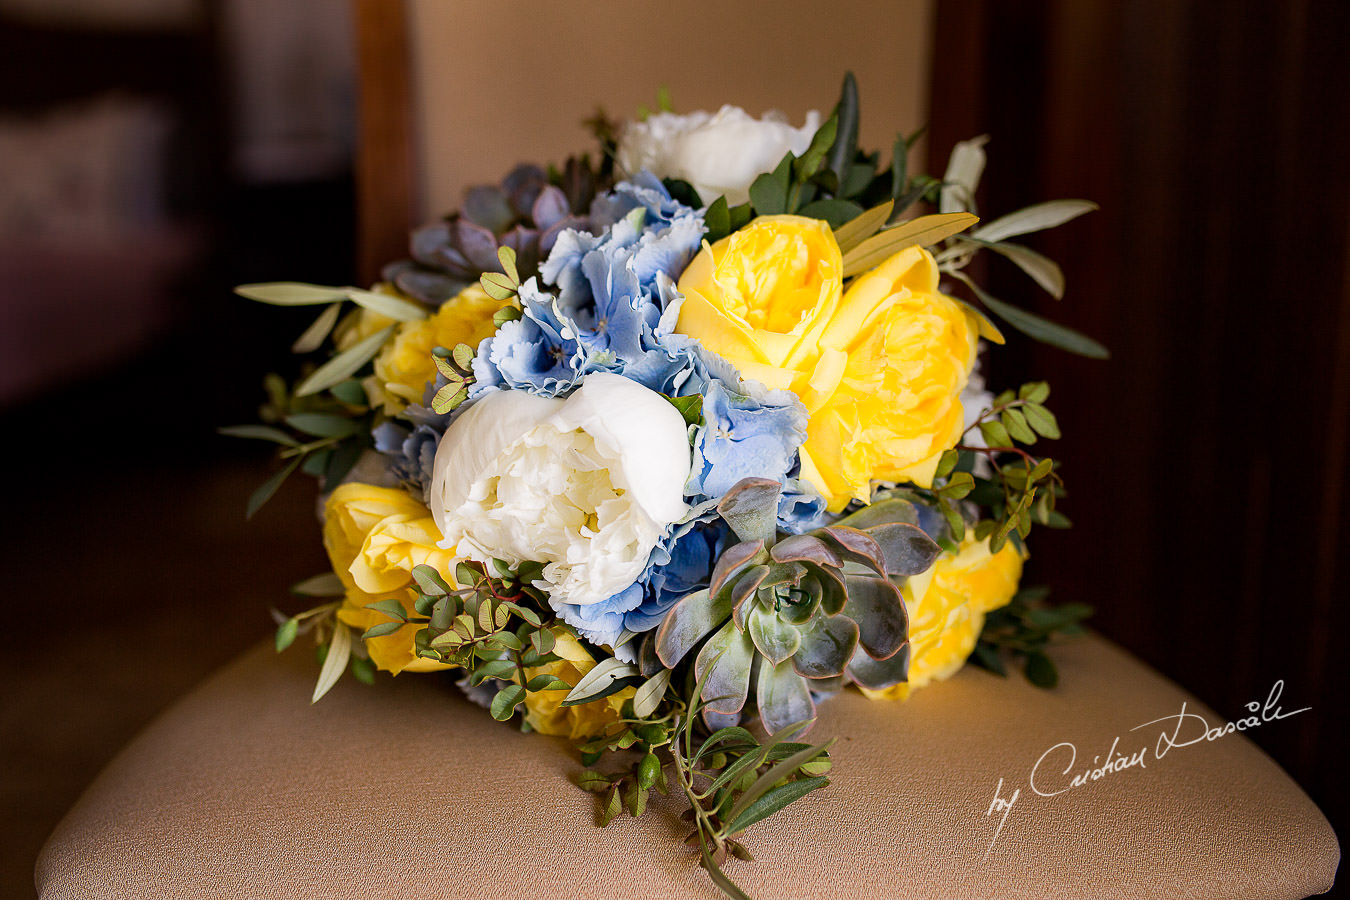 Wedding flowers captured at a Vasilias Nikoklis Inn Wedding in Paphos. Cyprus Wedding Photography by Cristian Dascalu.